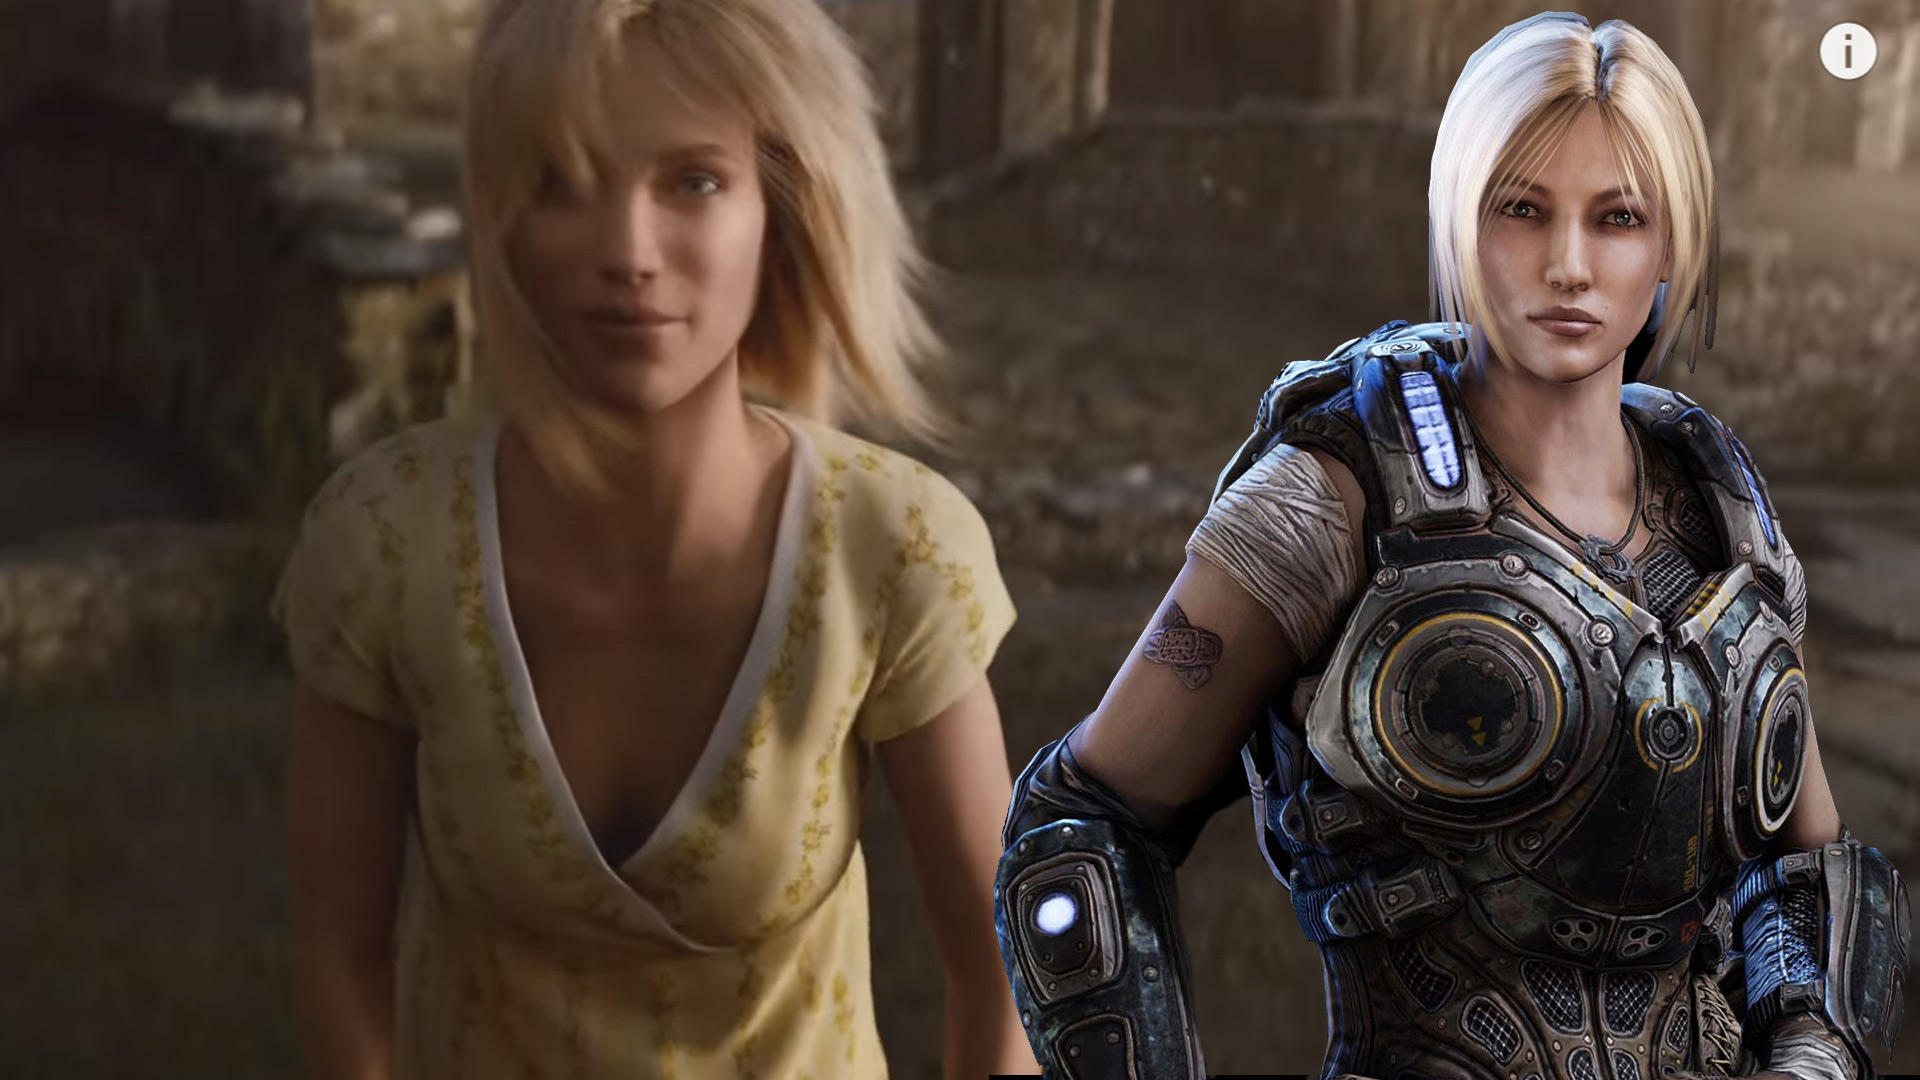 gears of war marcus and anya relationship